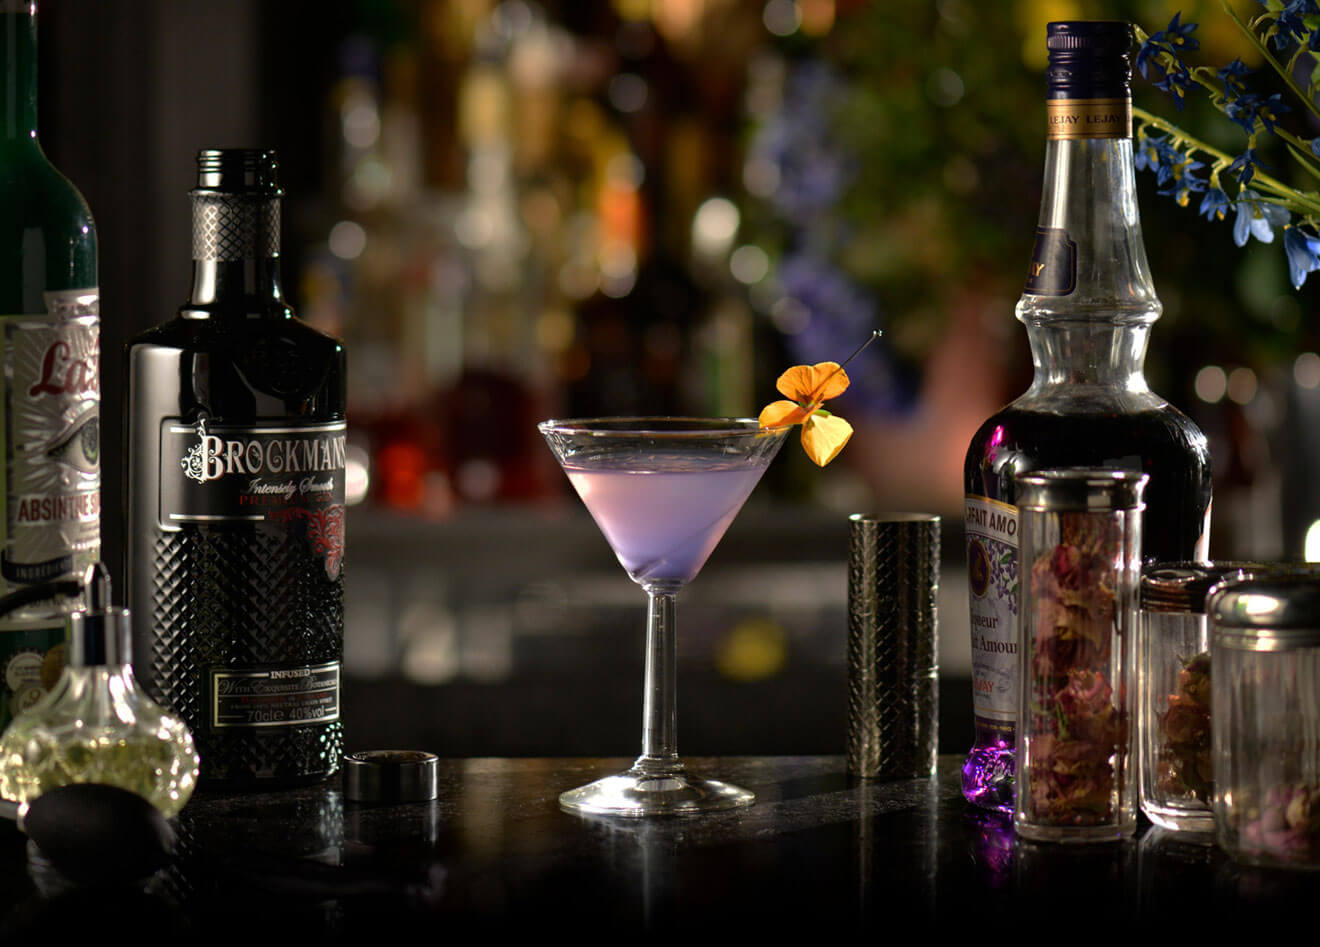 Ultra Violet, cocktail with garnishes, bottles on dark background